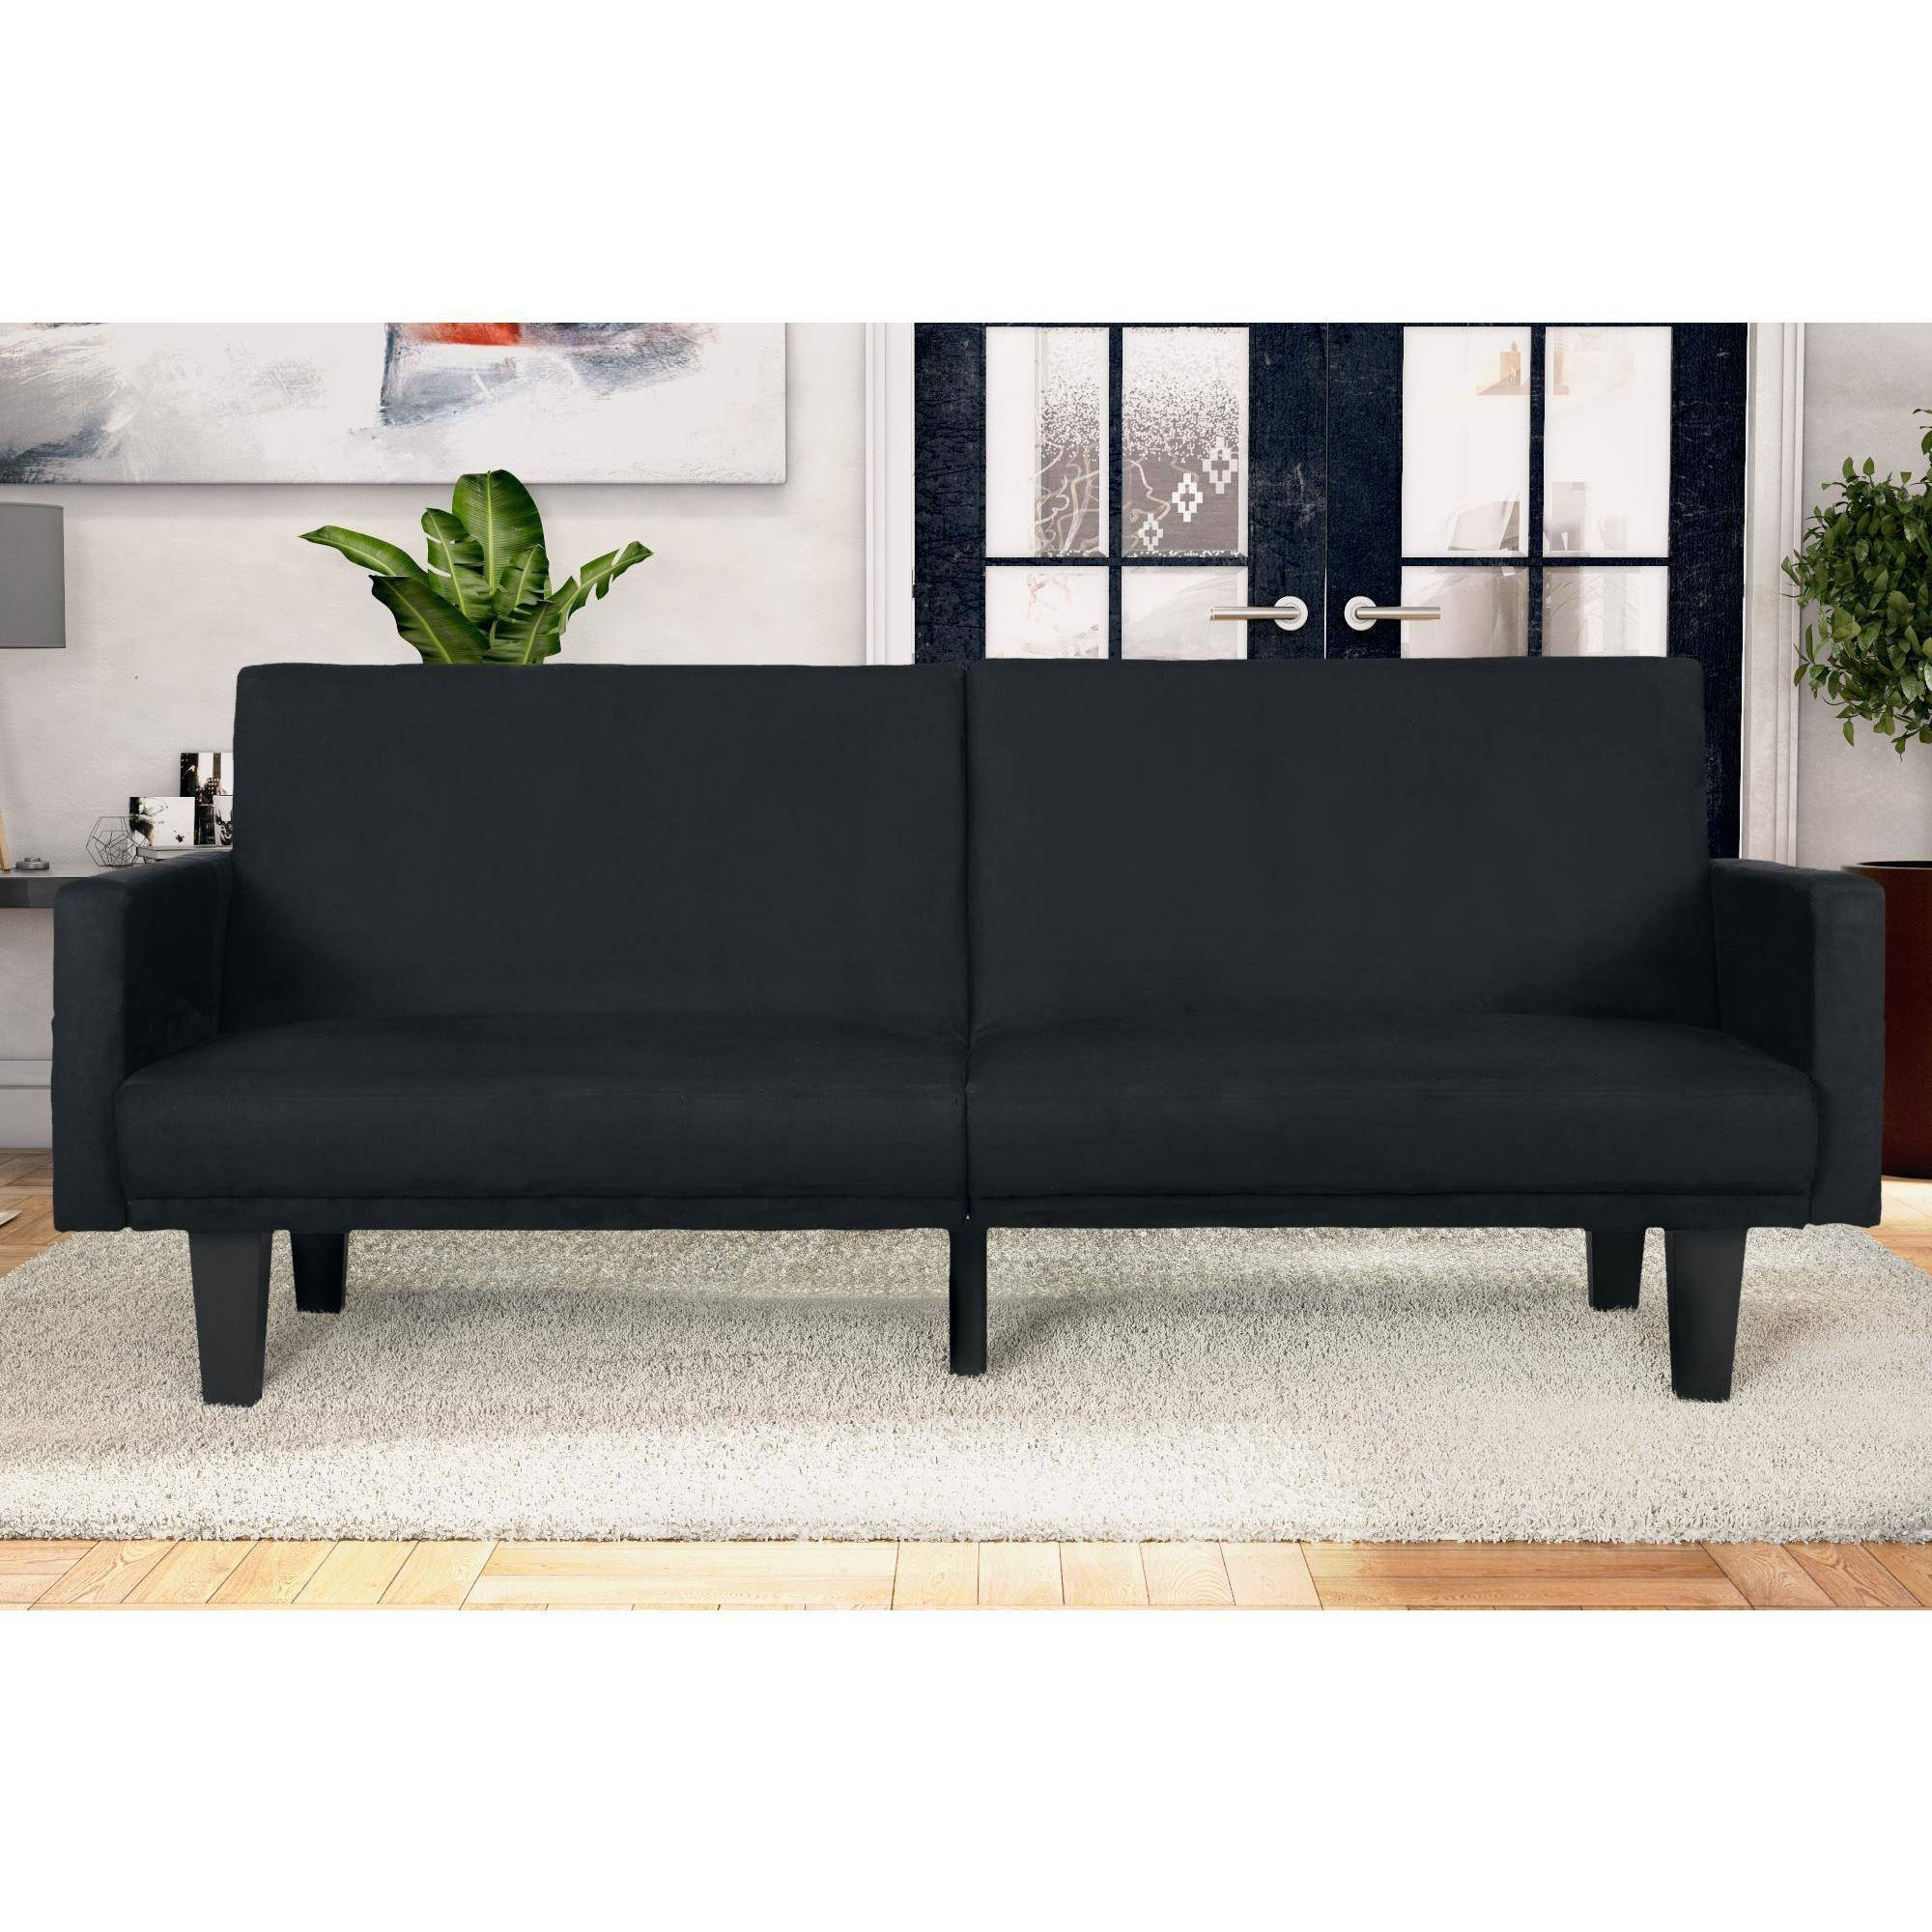 century p in price microfiber mic upholstery mid dhp red sofa style htm contemporary bed retail futon futons